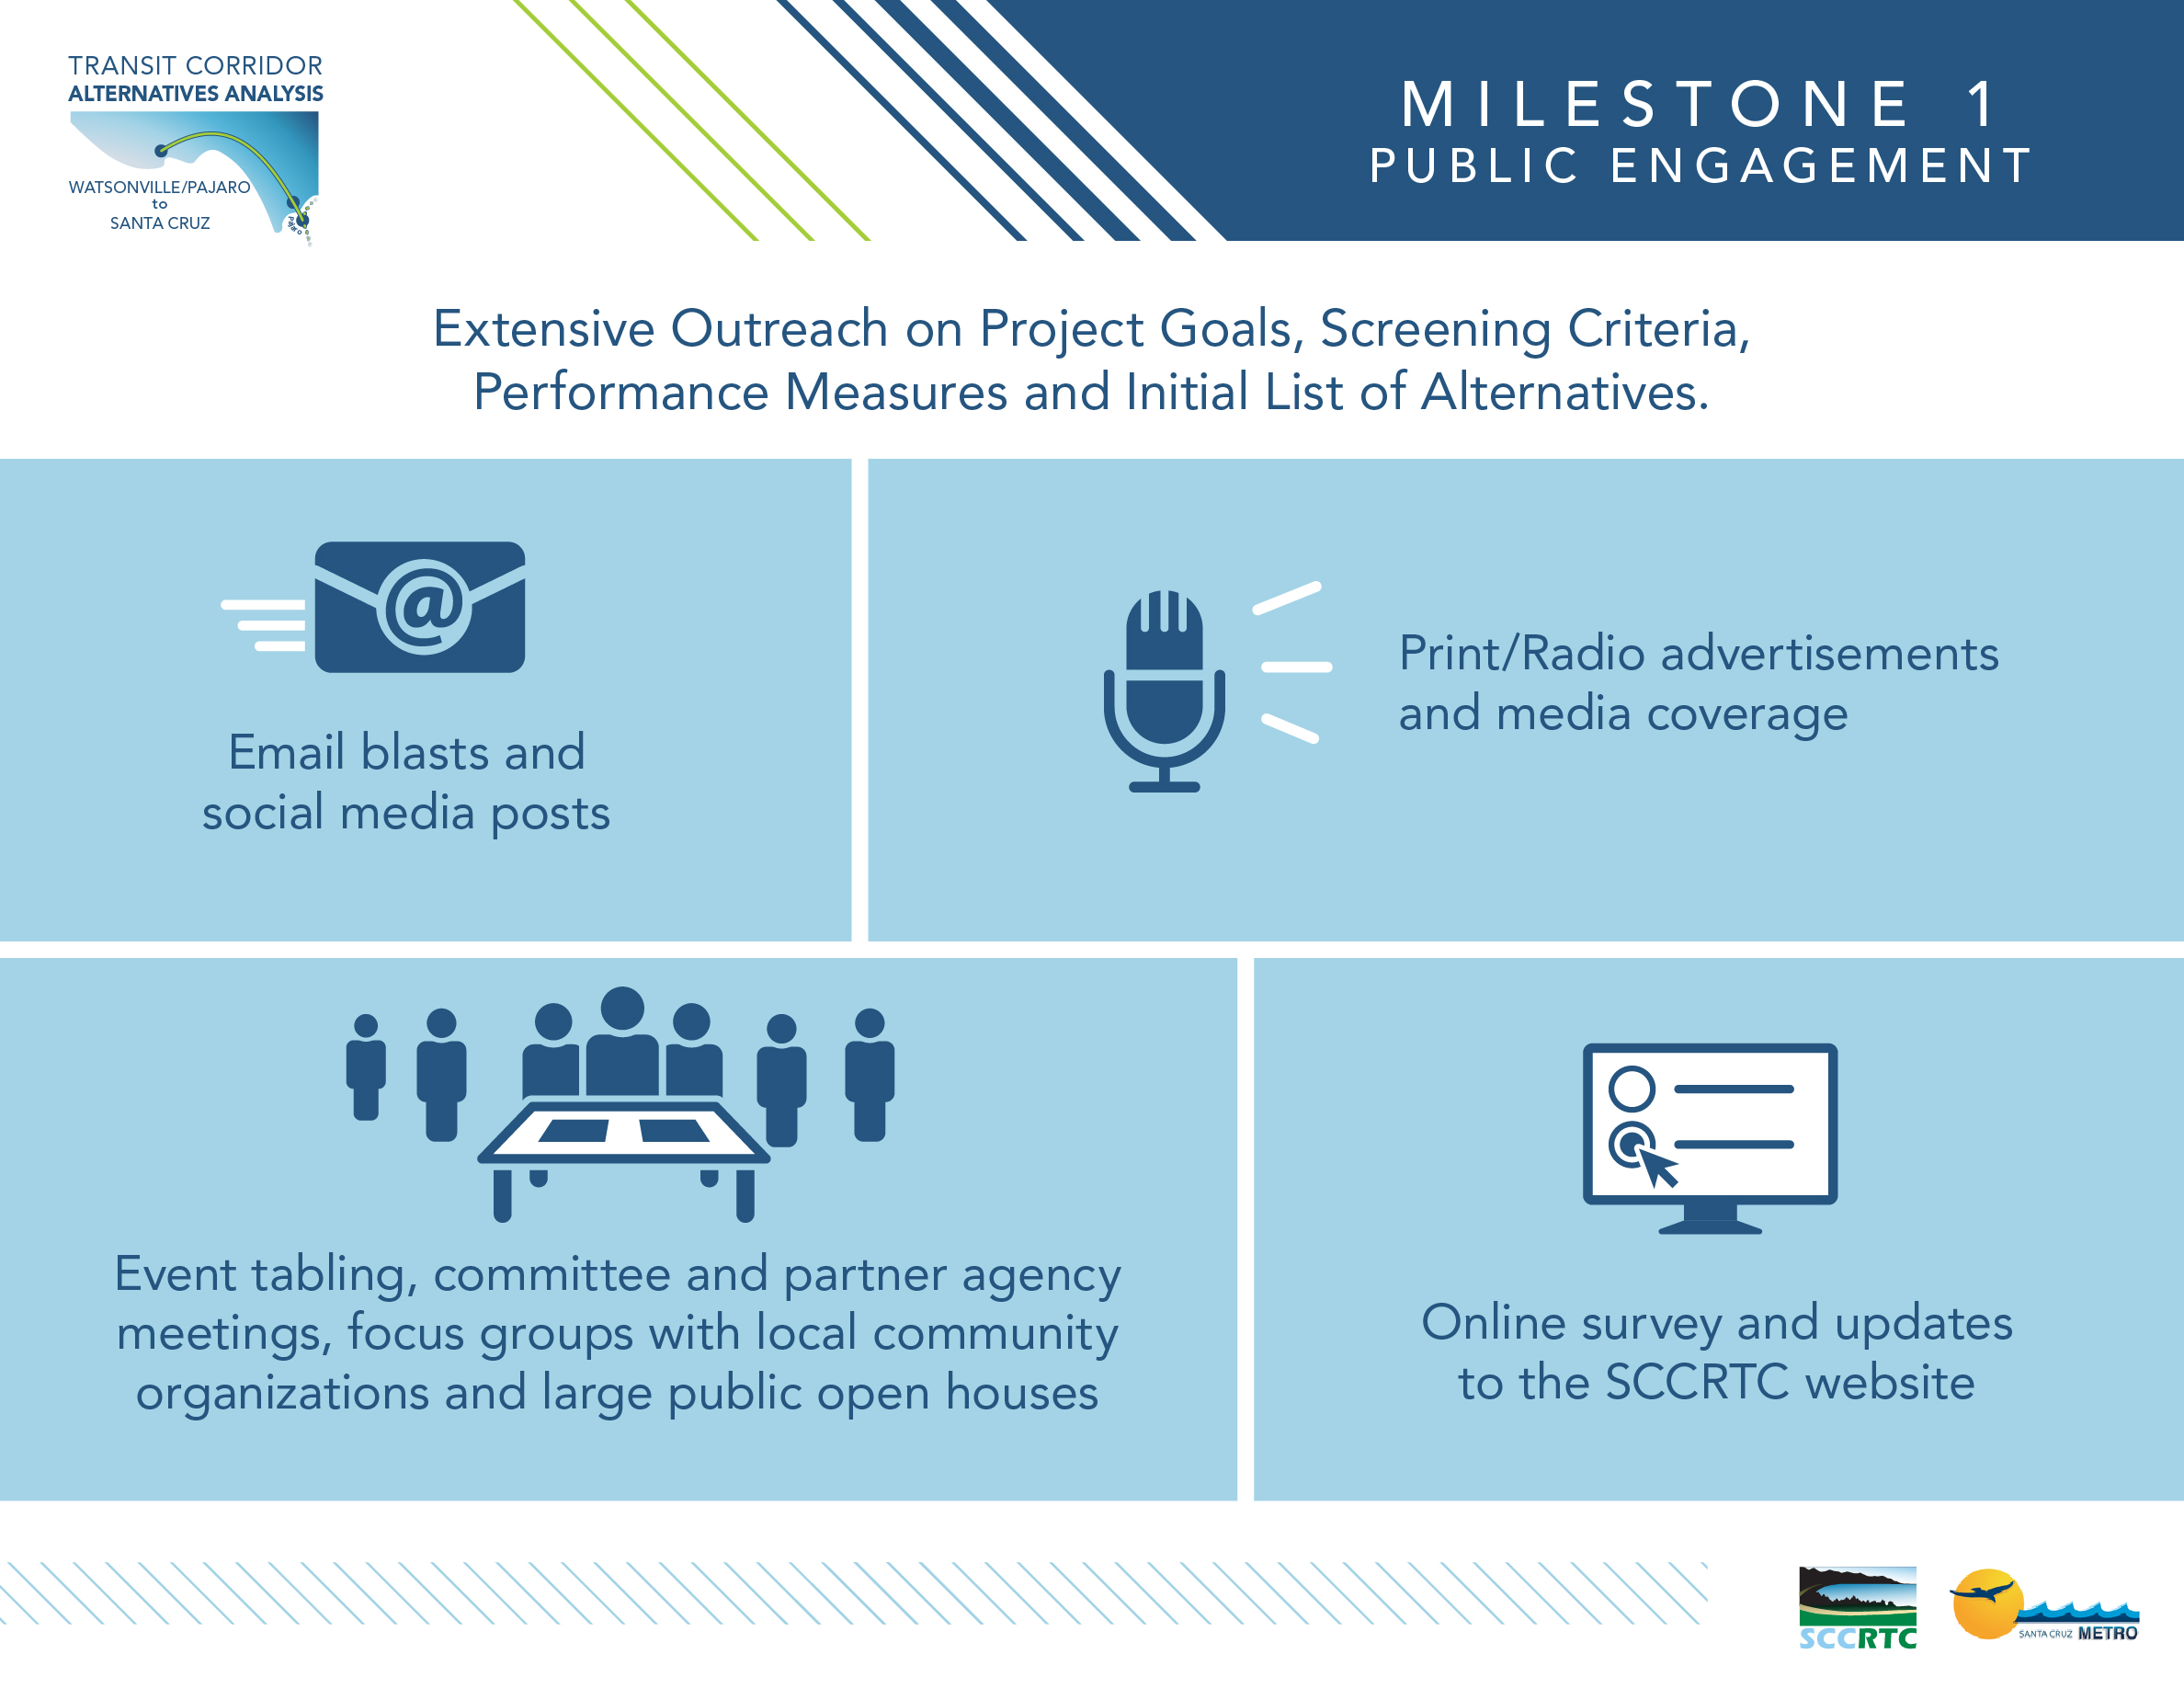 Board 3: Milestone 1 Public Engagement Extensive Outreach on Project Goals, Screening Criteria, Performance Measures and Initial List of Alternatives. • Email blasts • Social media posts • Print/Radio advertisements • Media coverage • Event tabling • Committee and partner agency meetings • Focus groups with local community organizations • Large public open houses • Online survey and updates to the SCCRTC website